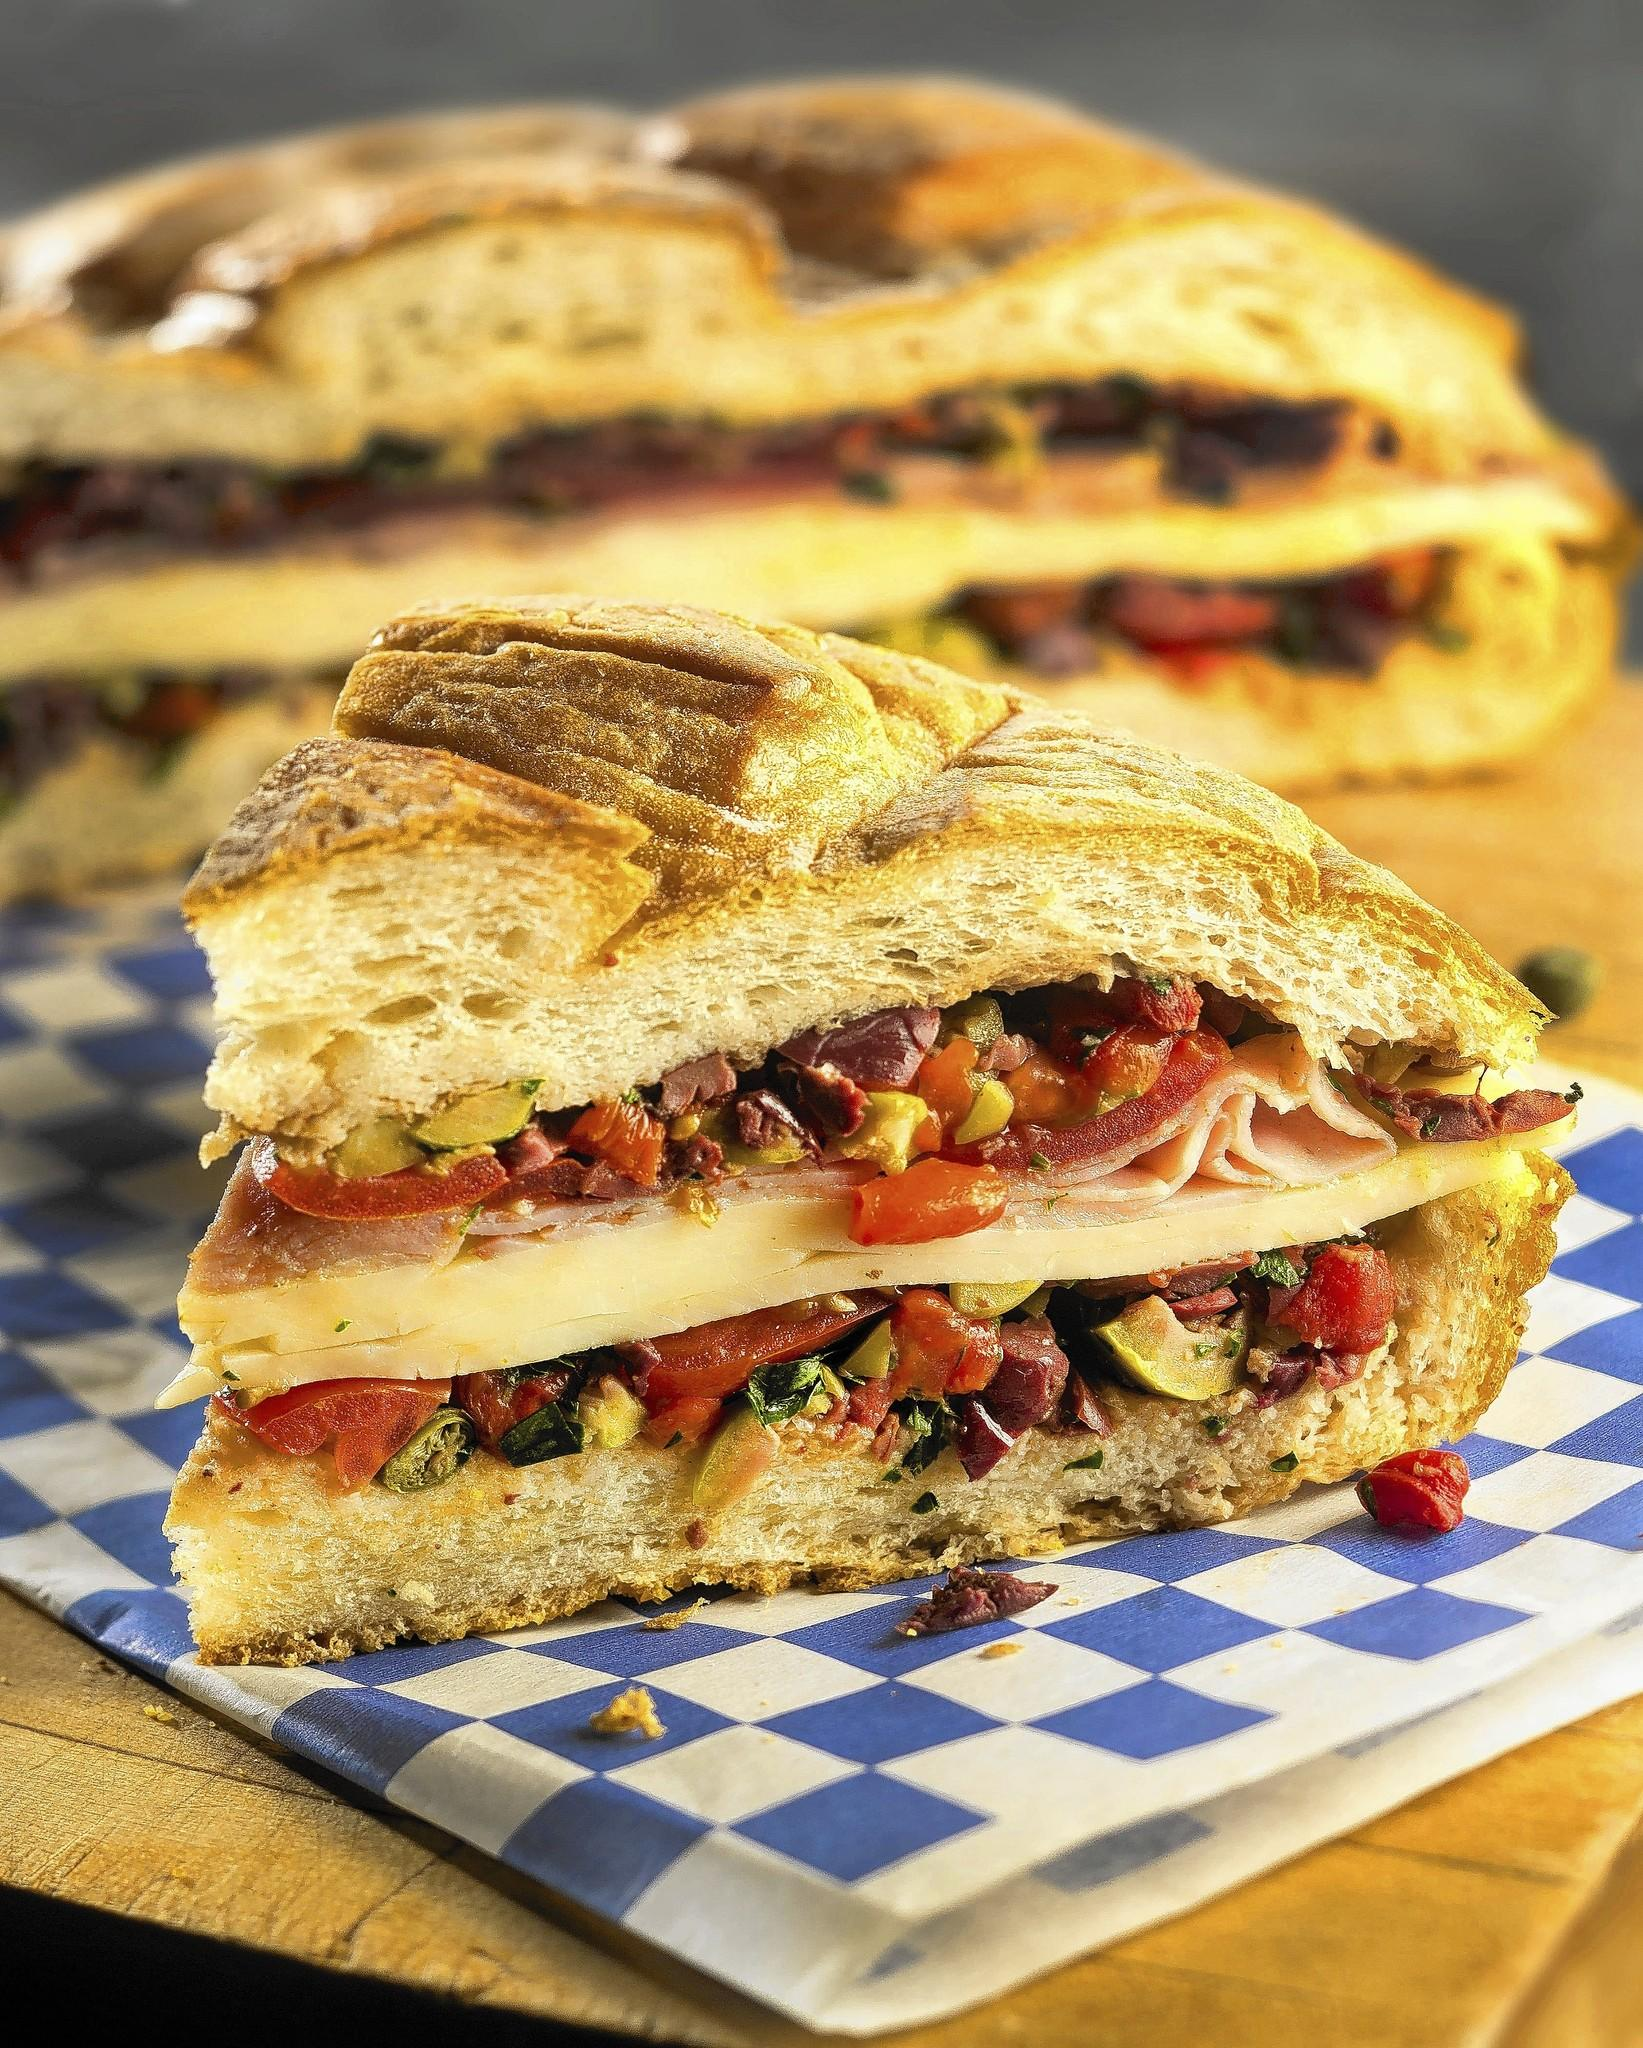 ... the range: Muffuletta recipe: Engineering a sandwich - Chicago Tribune